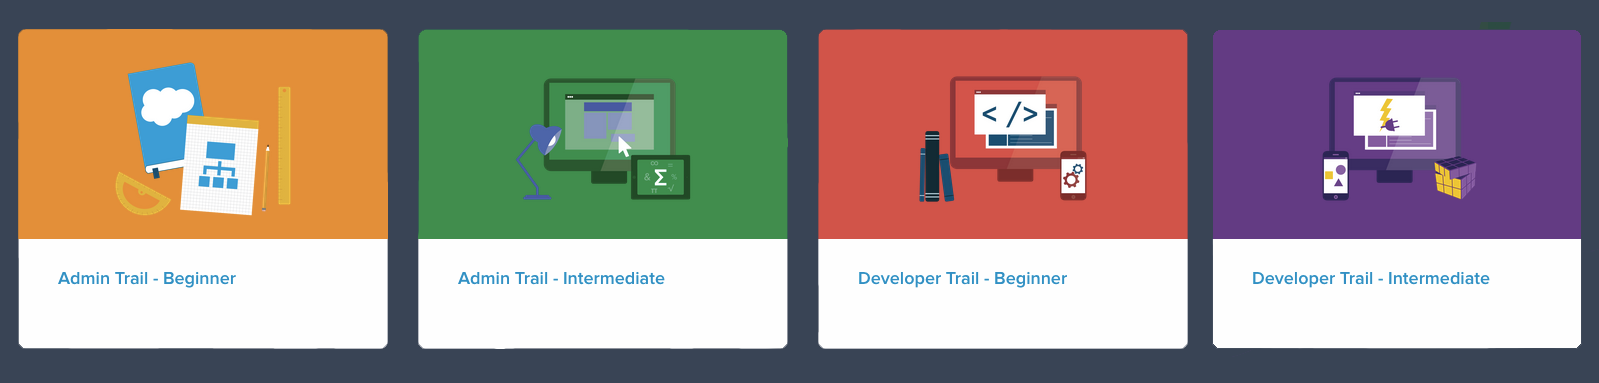 Learn Salesforce with Trailhead: new trails and content!